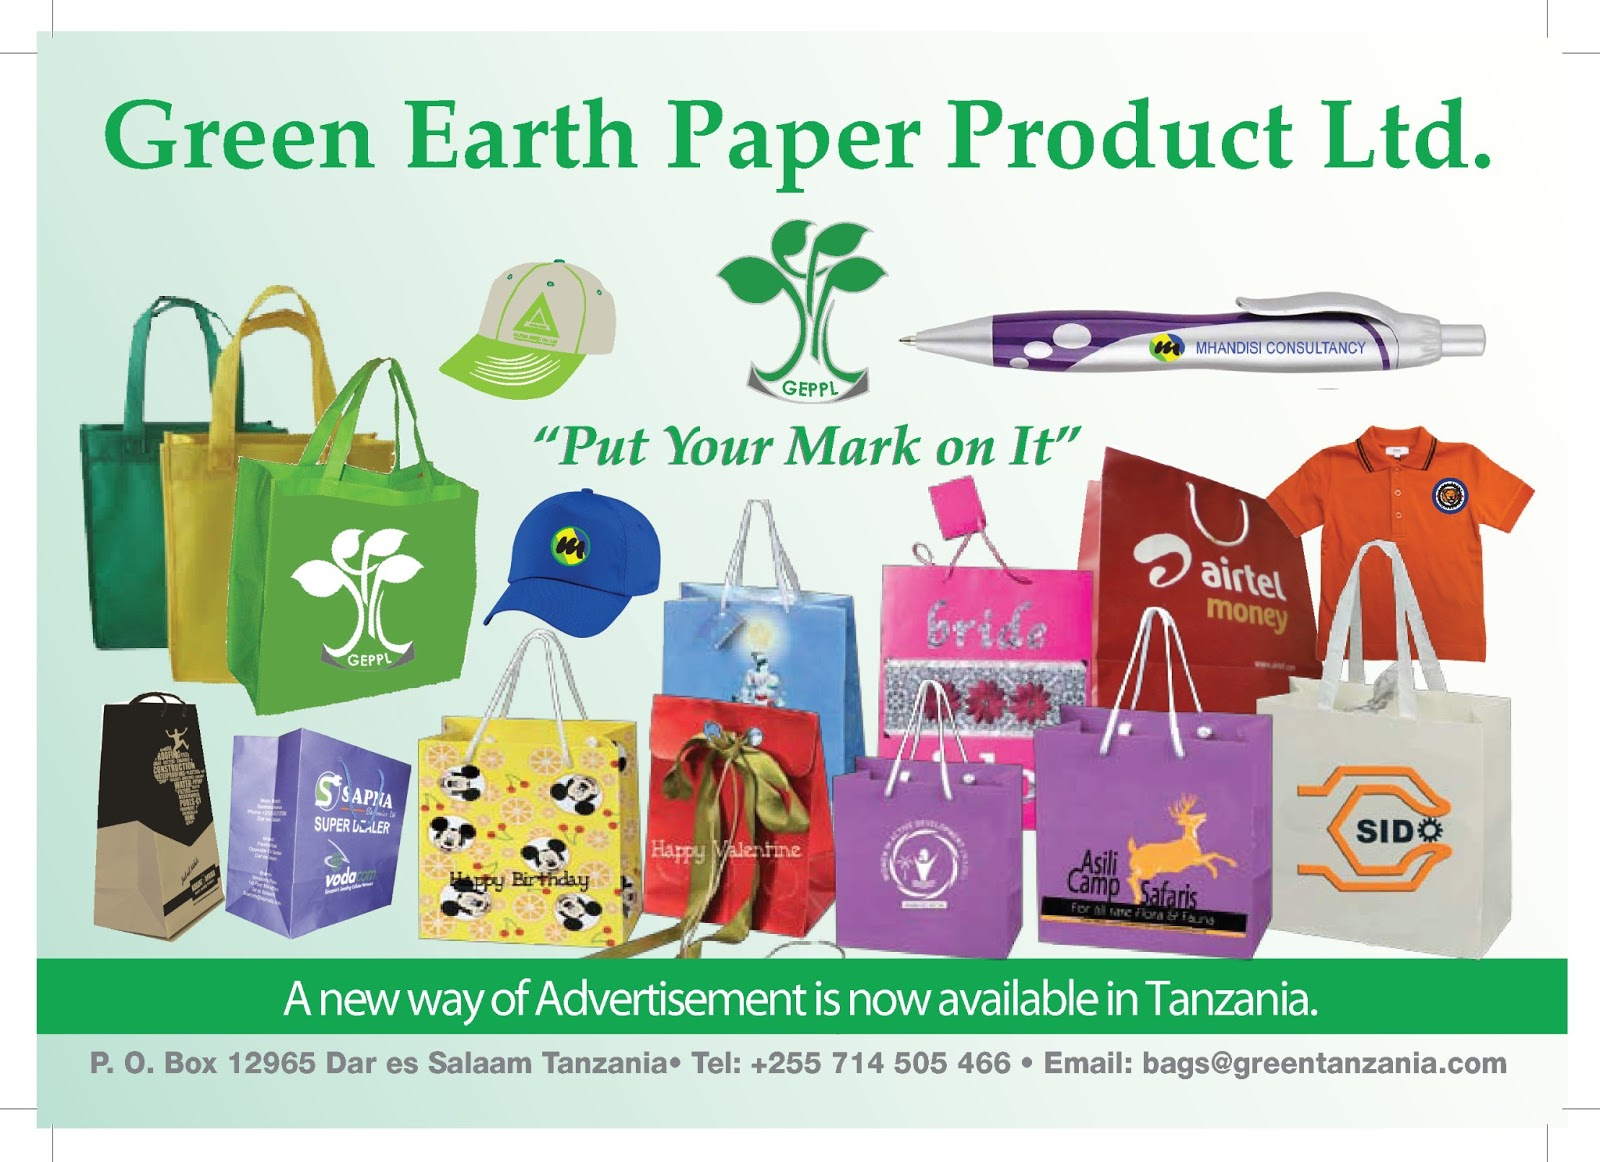 green earth-essays Essay on clean earth is green earth click to continue see also: model paragraphs and essays an argumentative persuasive on the movie the help essay any student caught cheating on an examination should be essay on skip to content berlandreswaiturmoaswapymaredji.